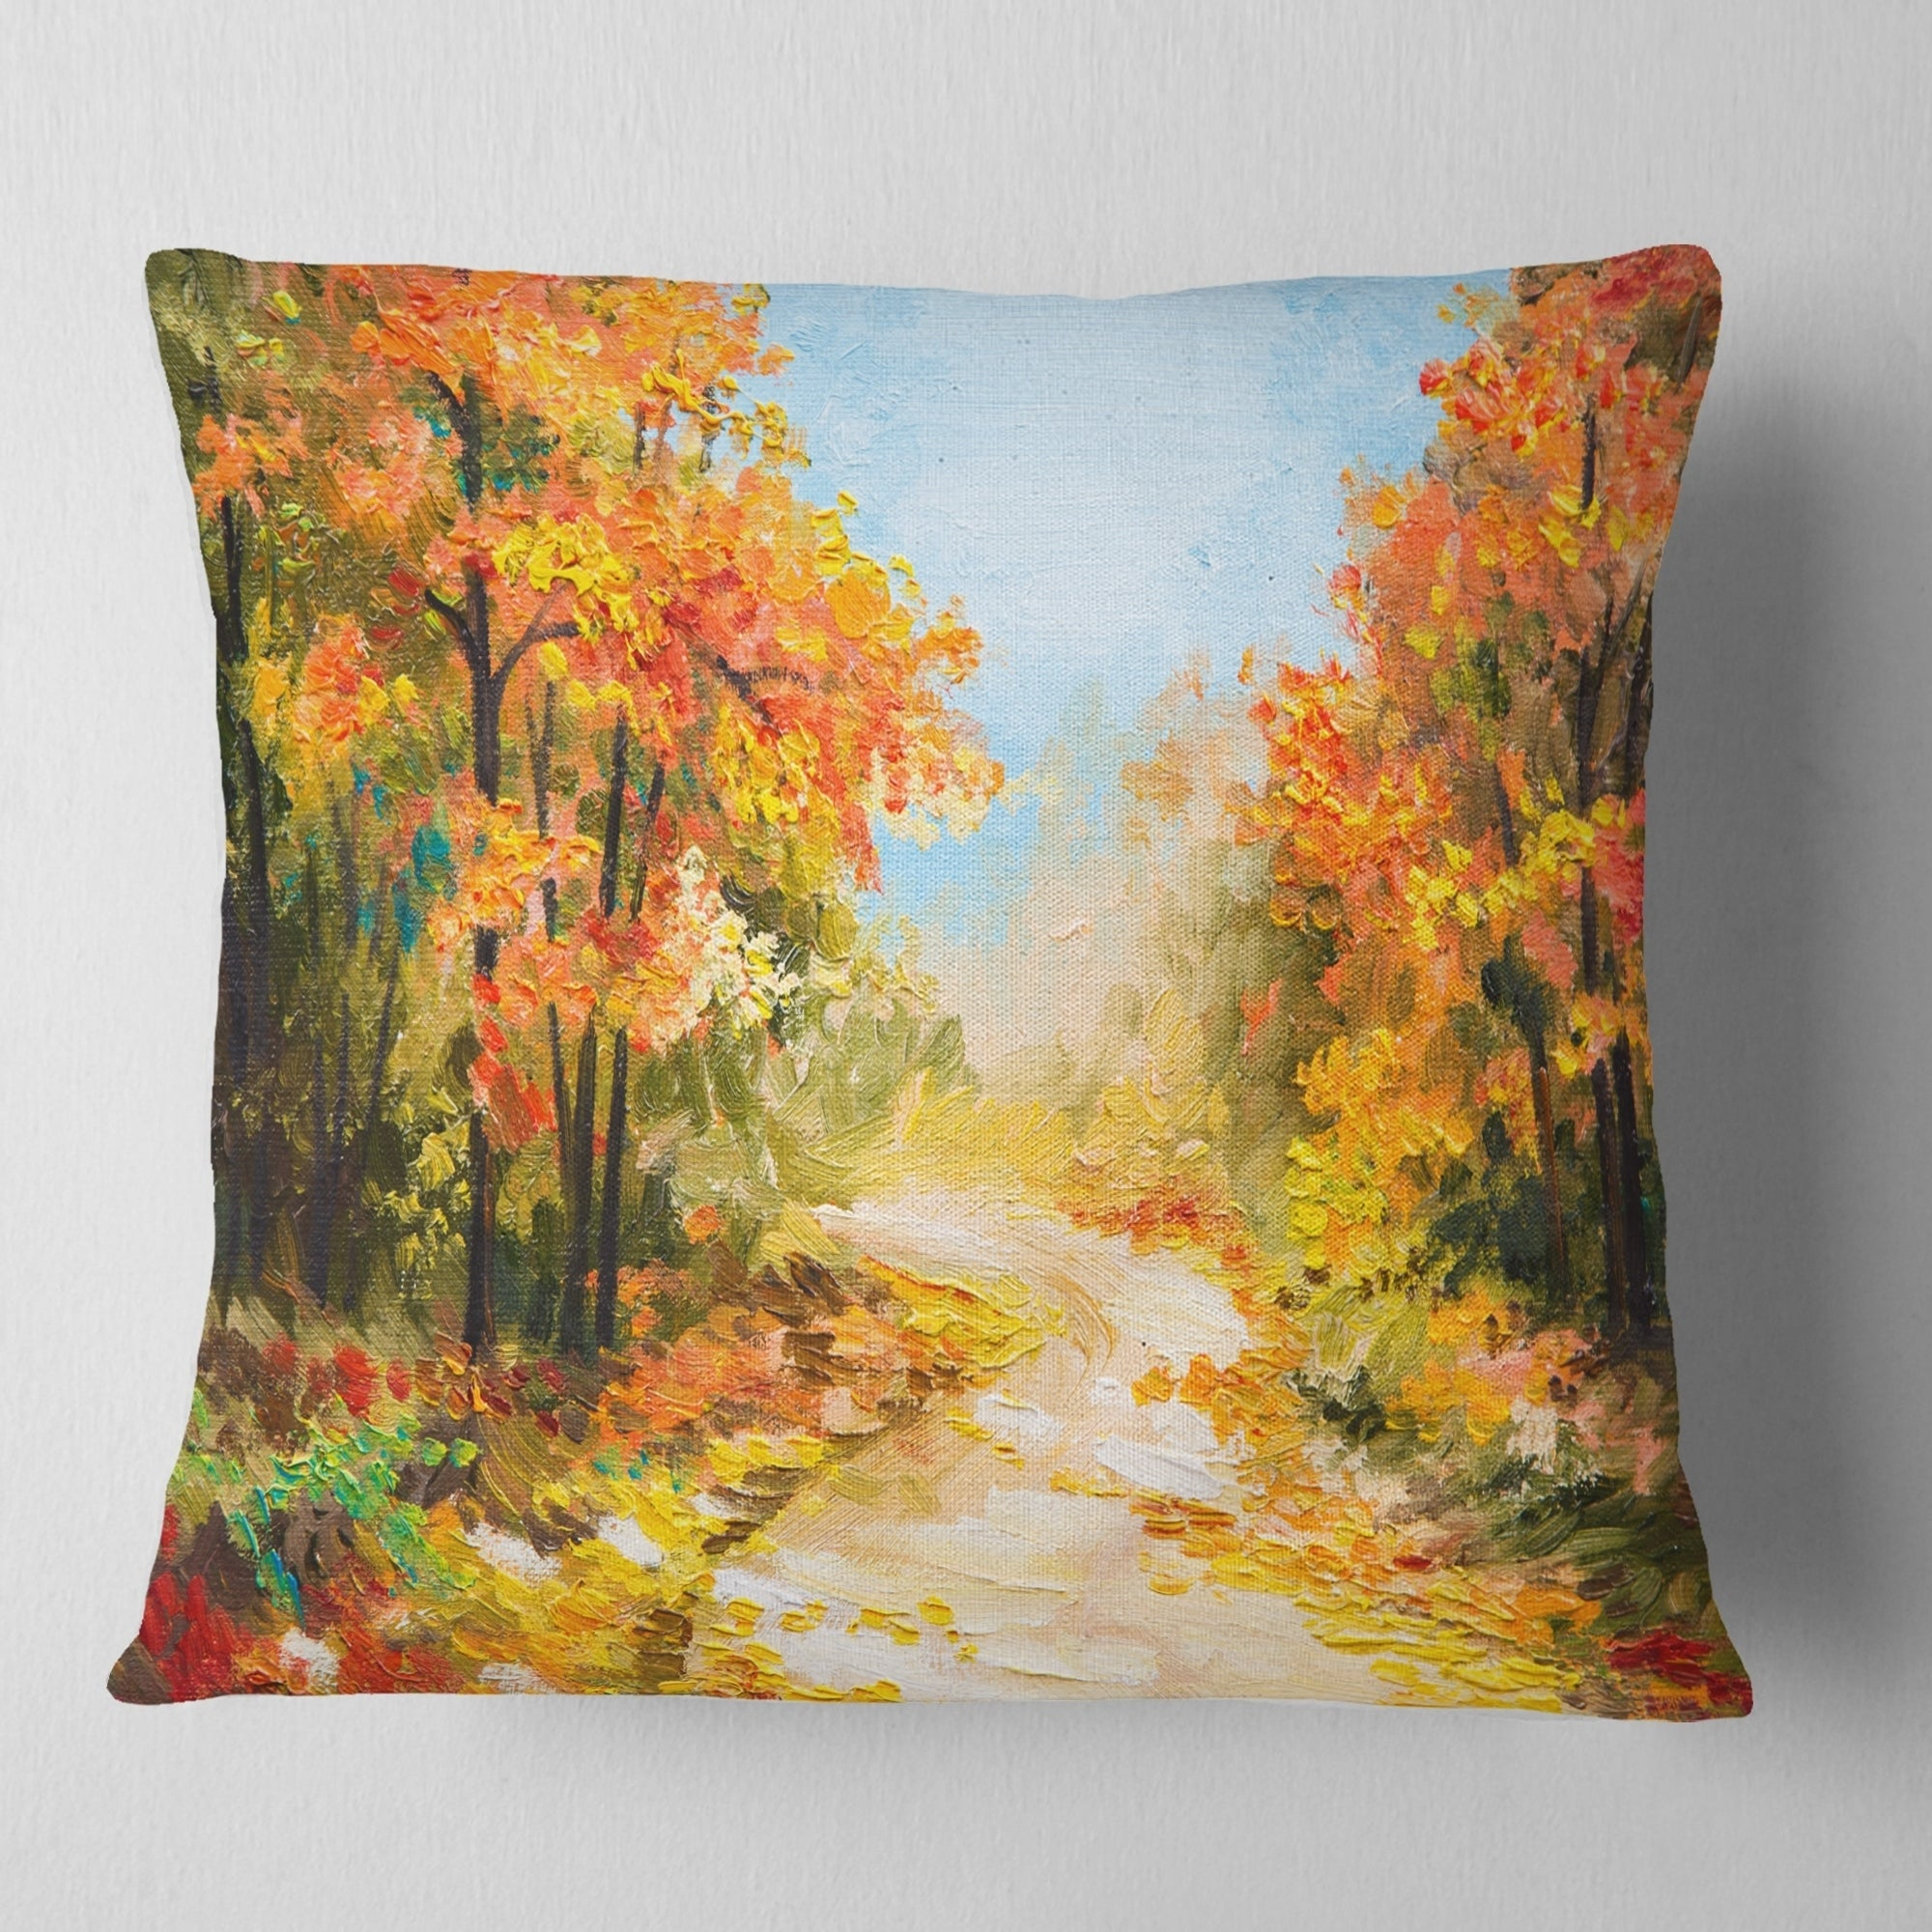 Designart Path In Autumn Forest Landscape Printed Throw Pillow Overstock 20947172